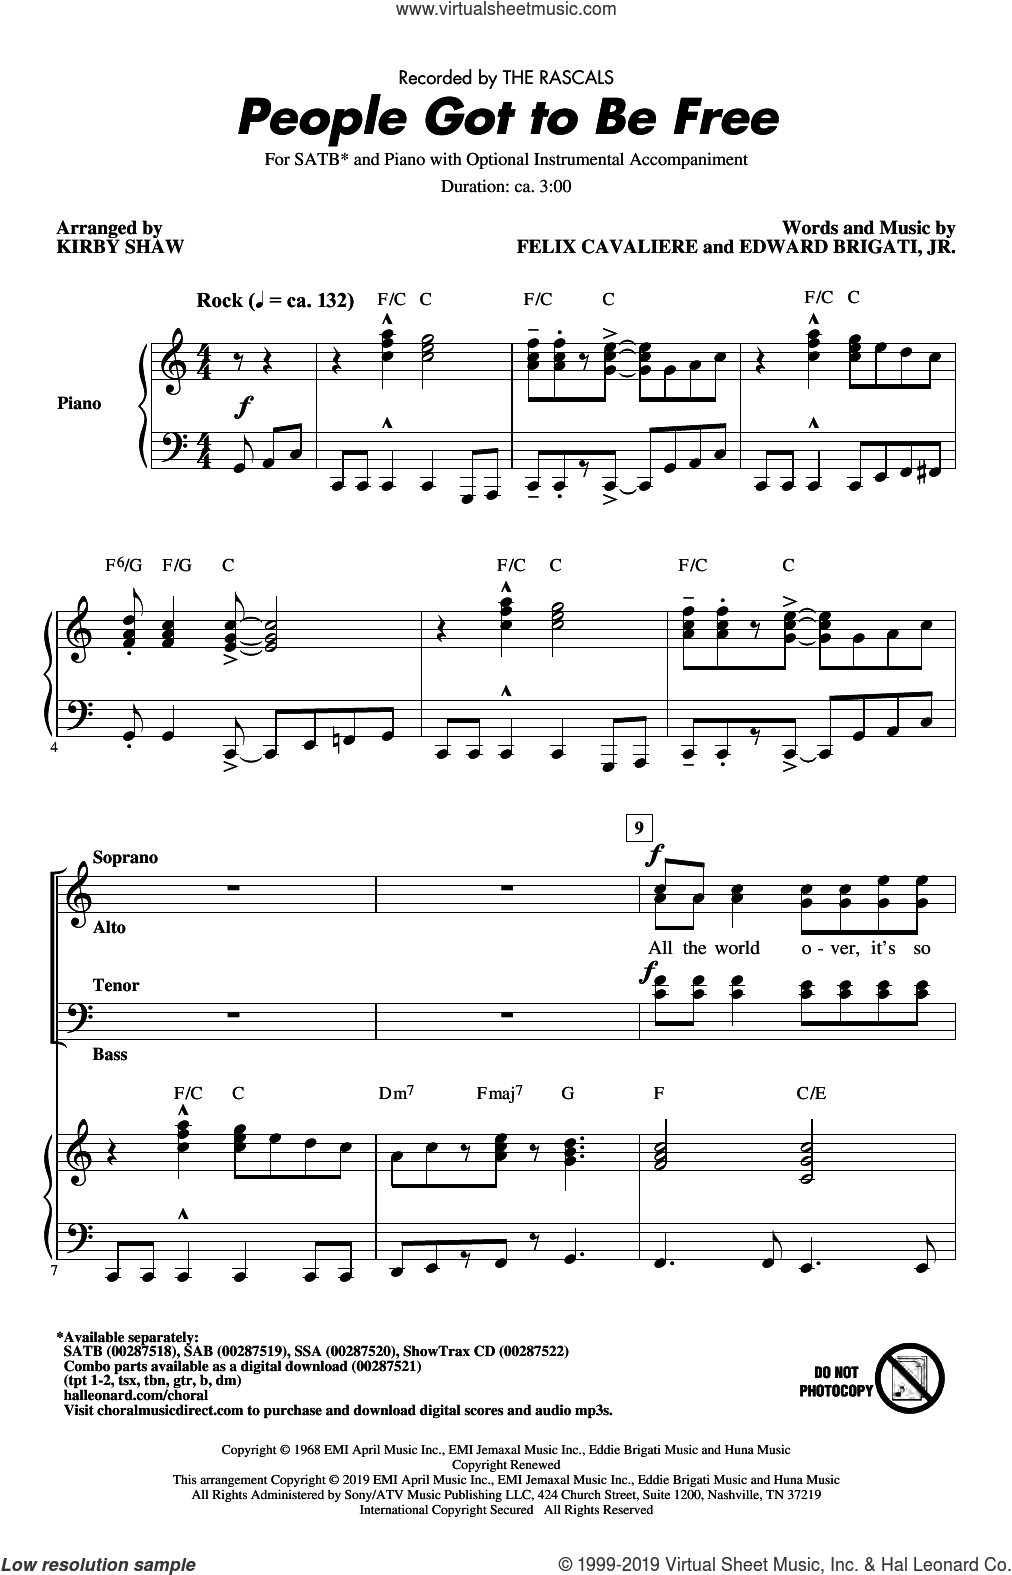 People Got To Be Free (arr. Kirby Shaw) sheet music for choir (SATB: soprano, alto, tenor, bass) by The Rascals, Kirby Shaw and Felix Cavaliere, intermediate skill level